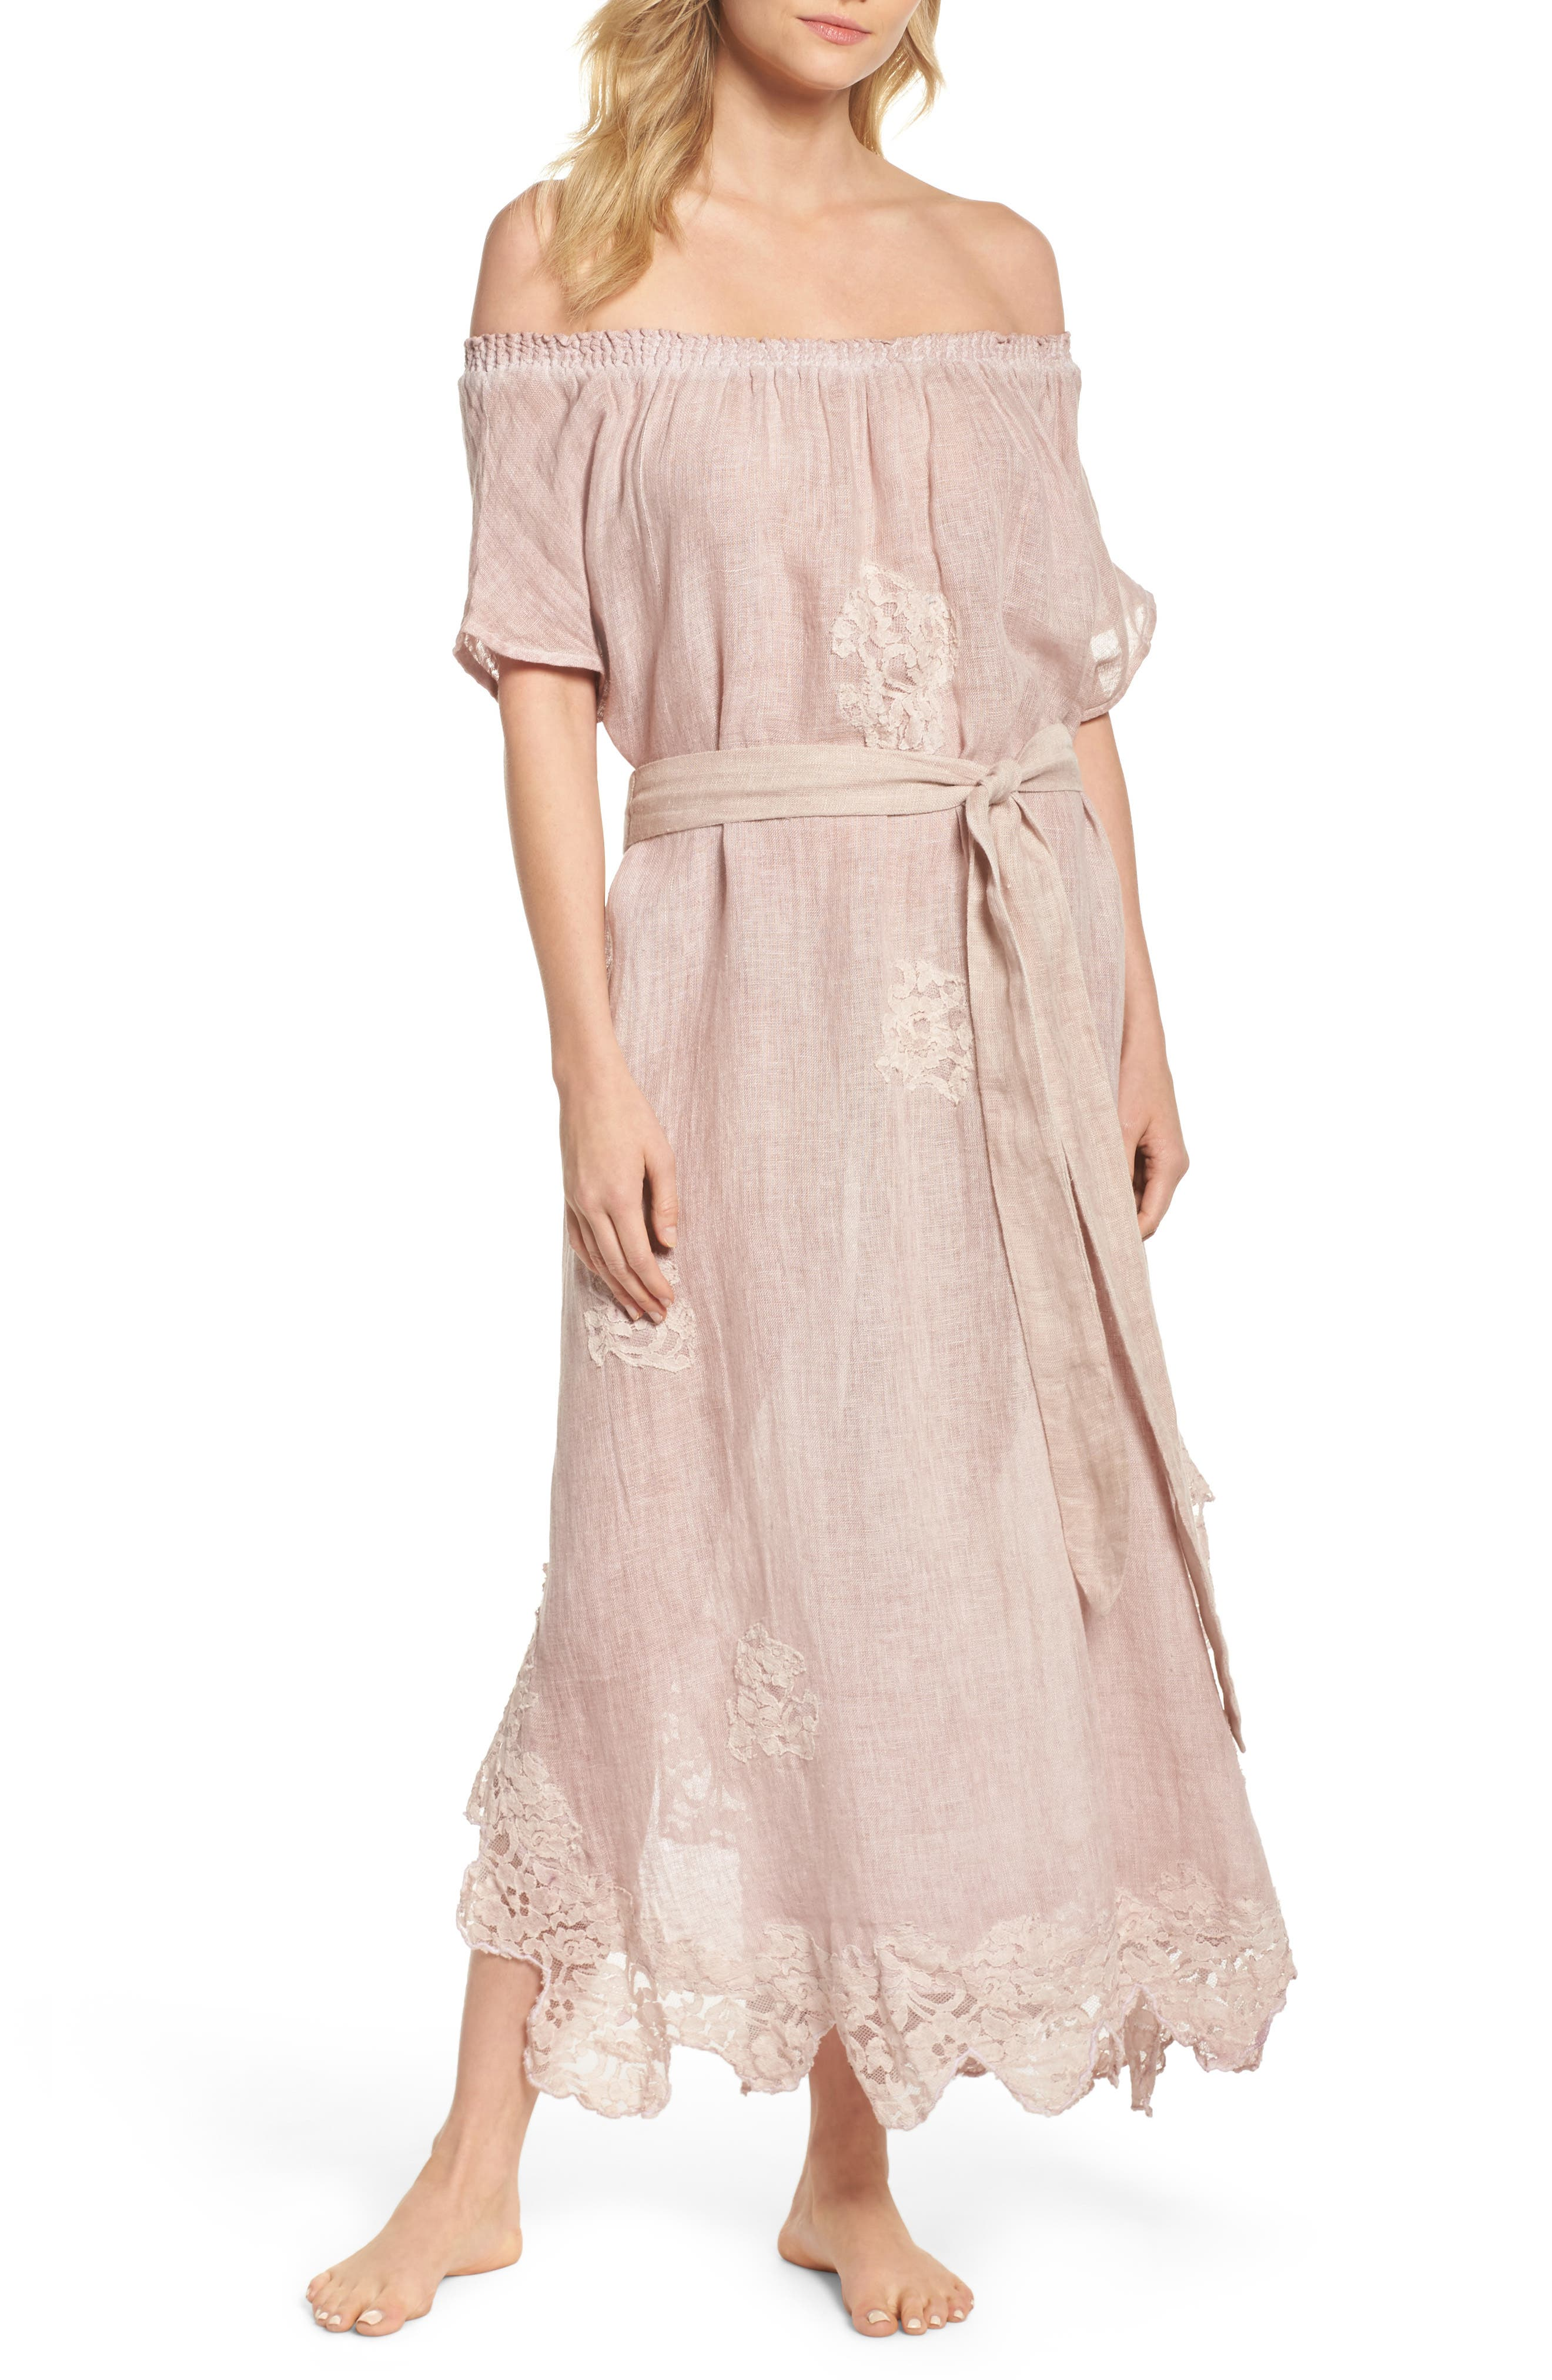 Muche et Muchette Daisy Linen Cover-Up Dress